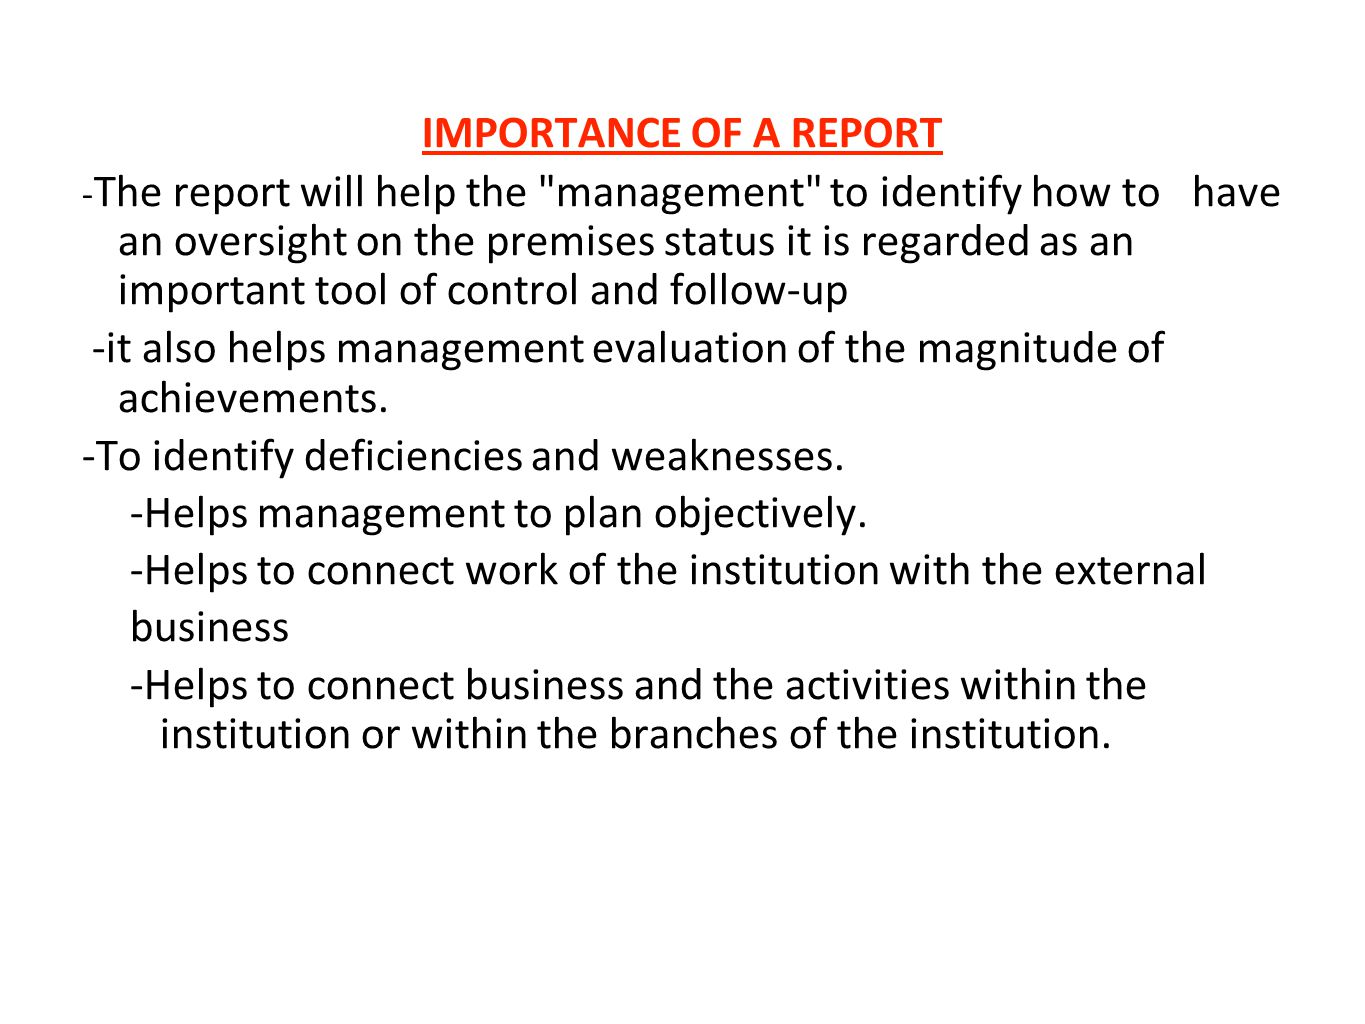 -it also helps management evaluation of the magnitude of achievements.